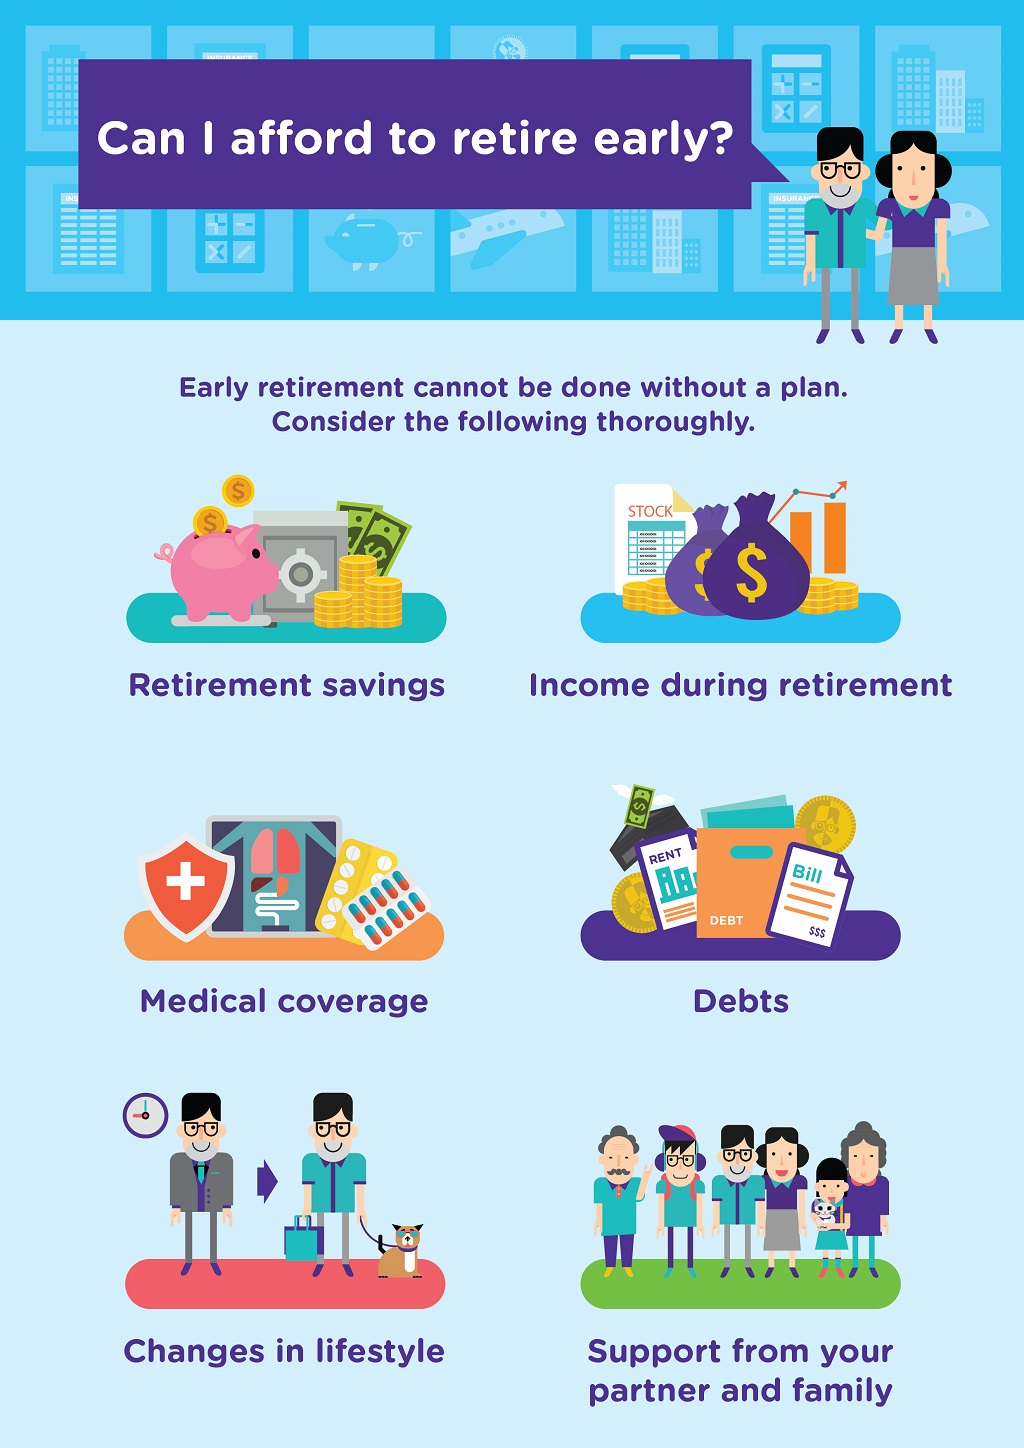 Can I afford to retire early? Early retirement cannot be done without a plan. Consider the following thoroughly.	Retirement savings Income during retirement Medical coverage  Debts Changes in lifestyle Support from your partner and family